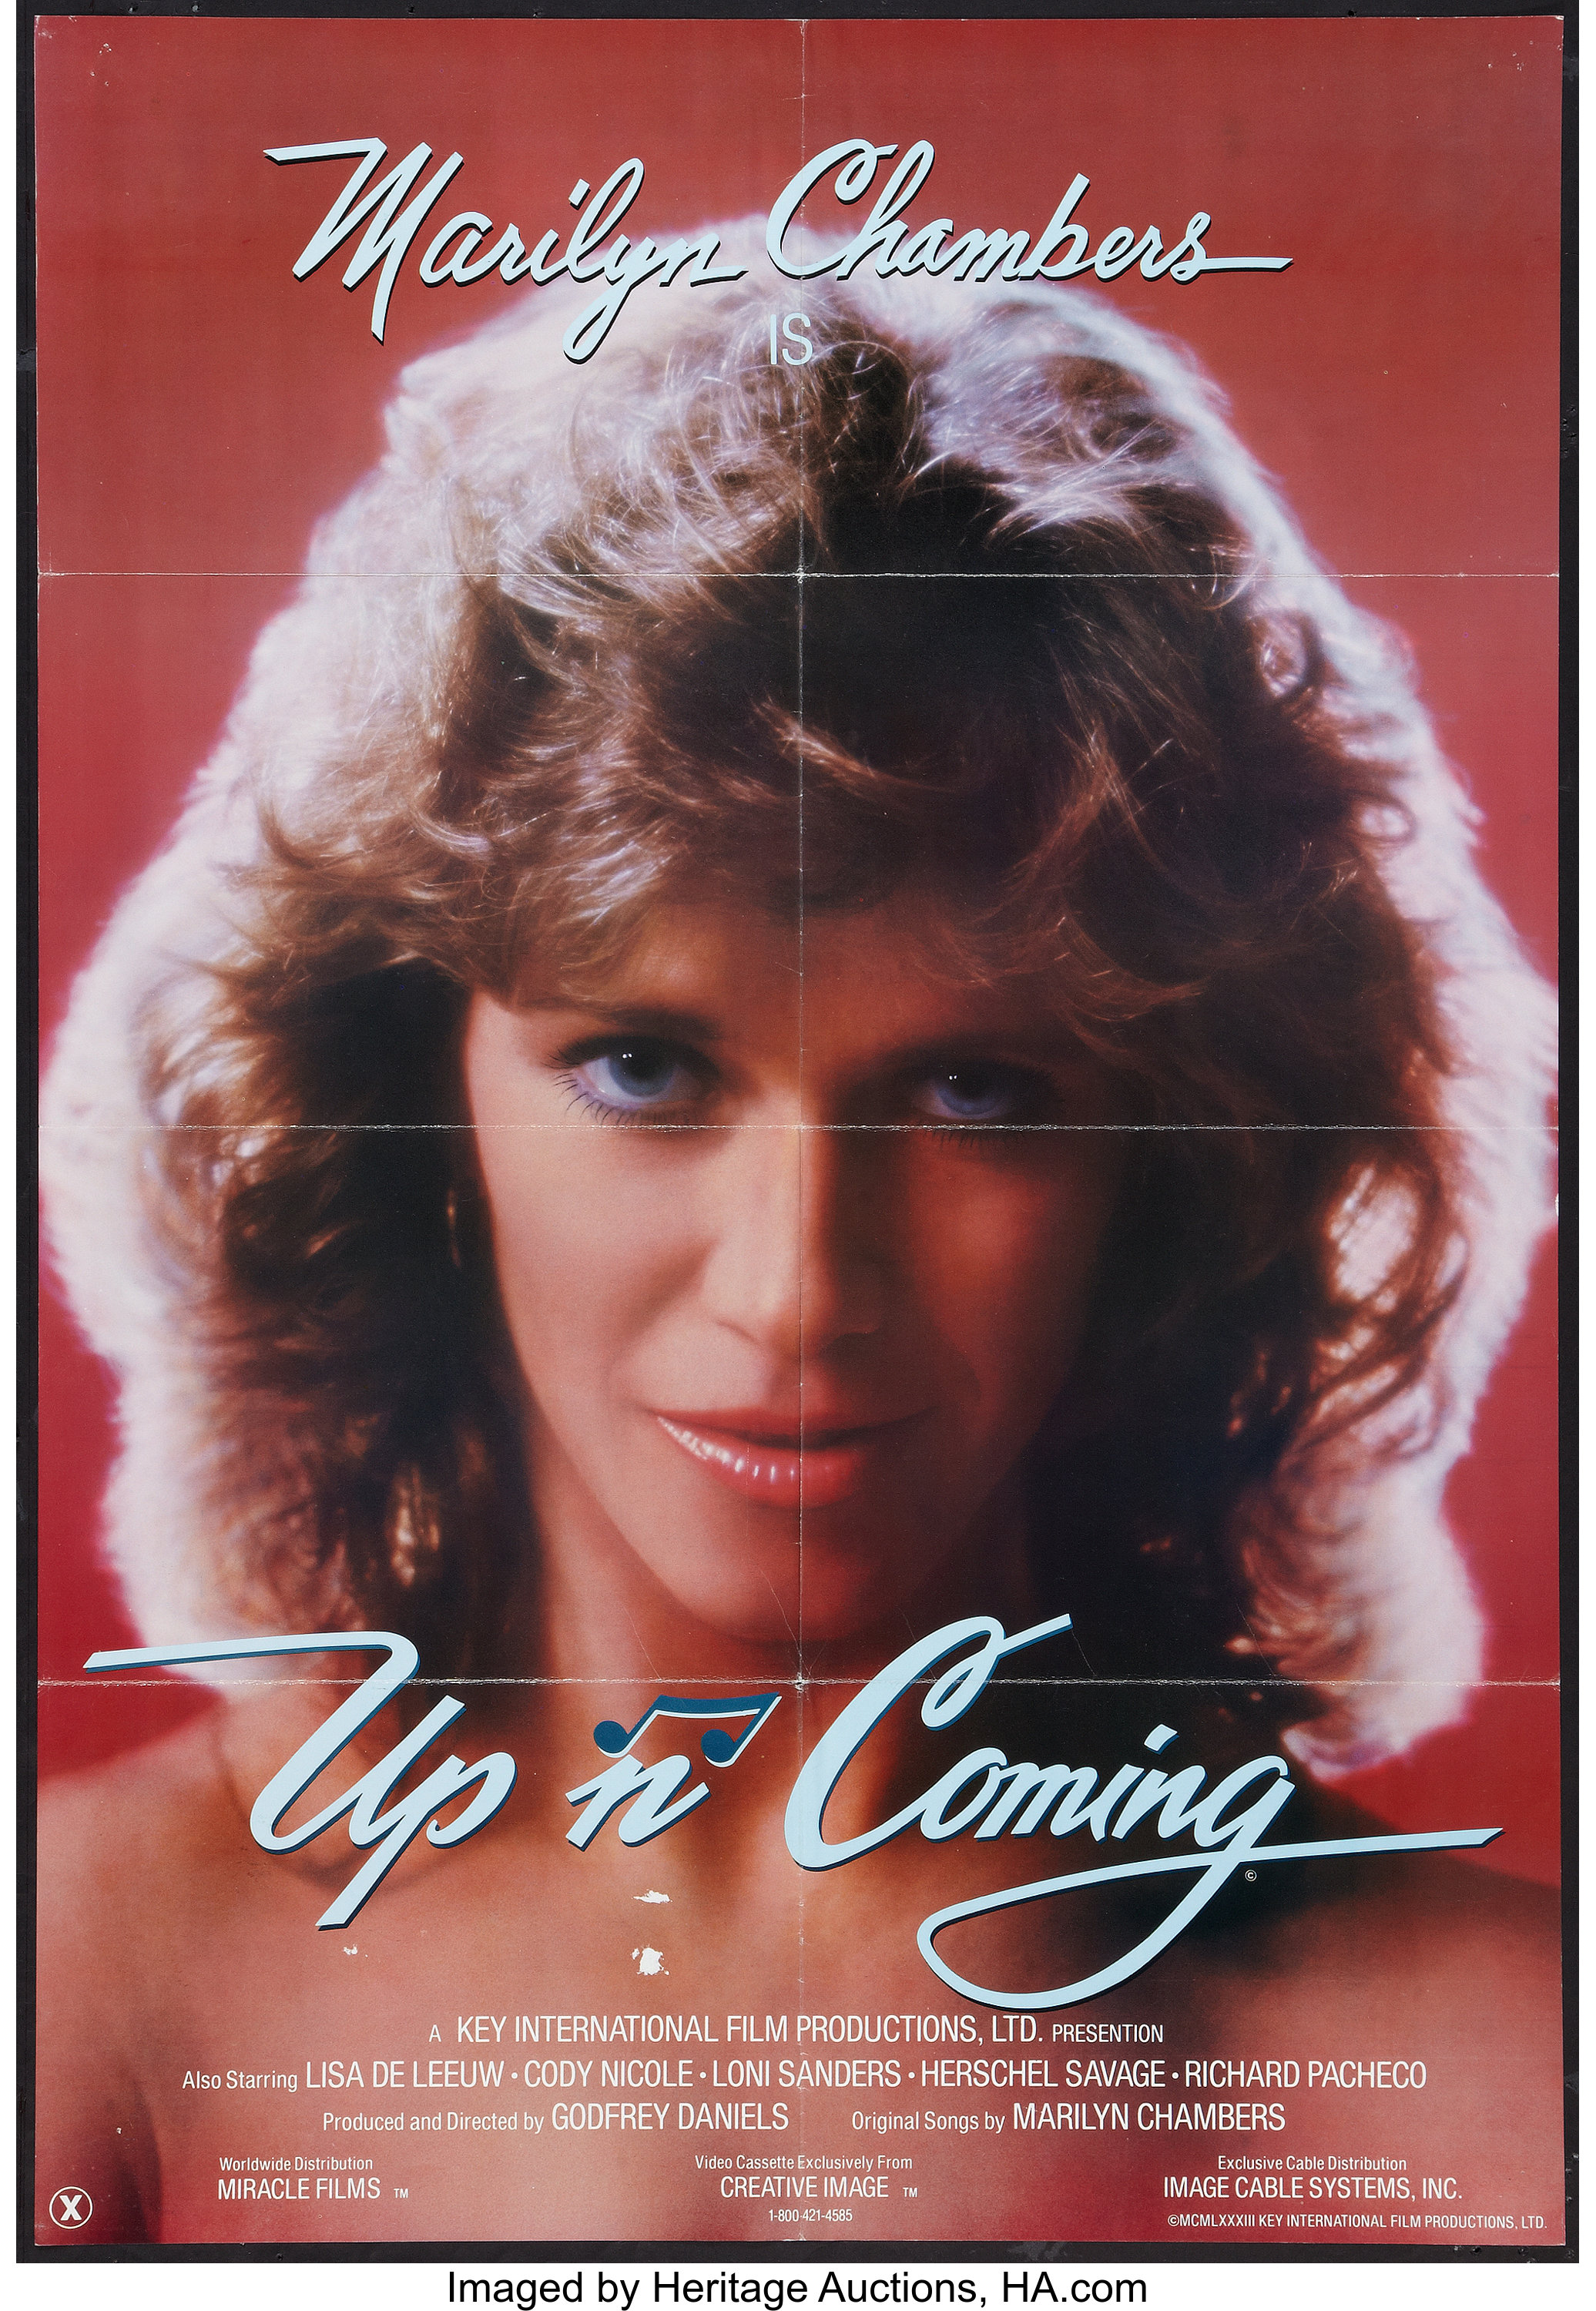 Up N Coming Miracle Films 1983 Poster 23 75 X 34 5 Lot 52400 Heritage Auctions Book a room and save 30%. heritage auctions